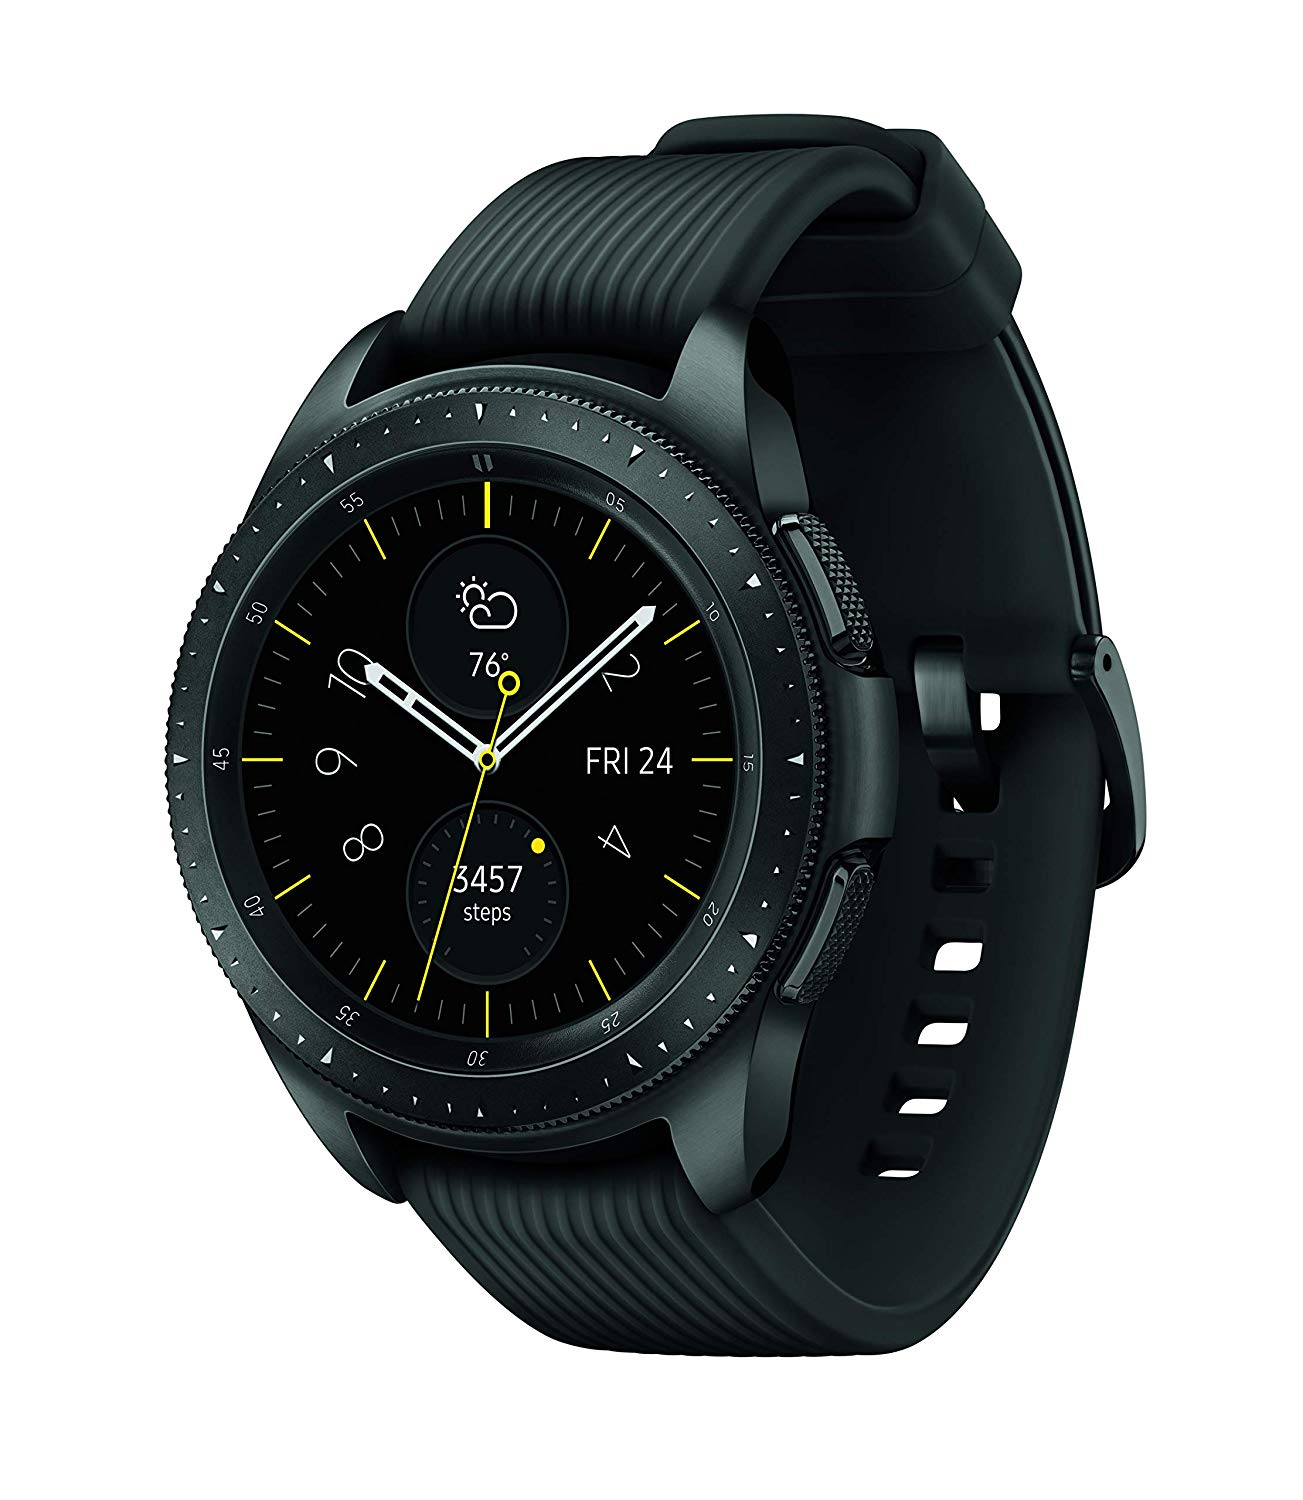 Samsung Galaxy Watch: Which size should you buy? | Android ...